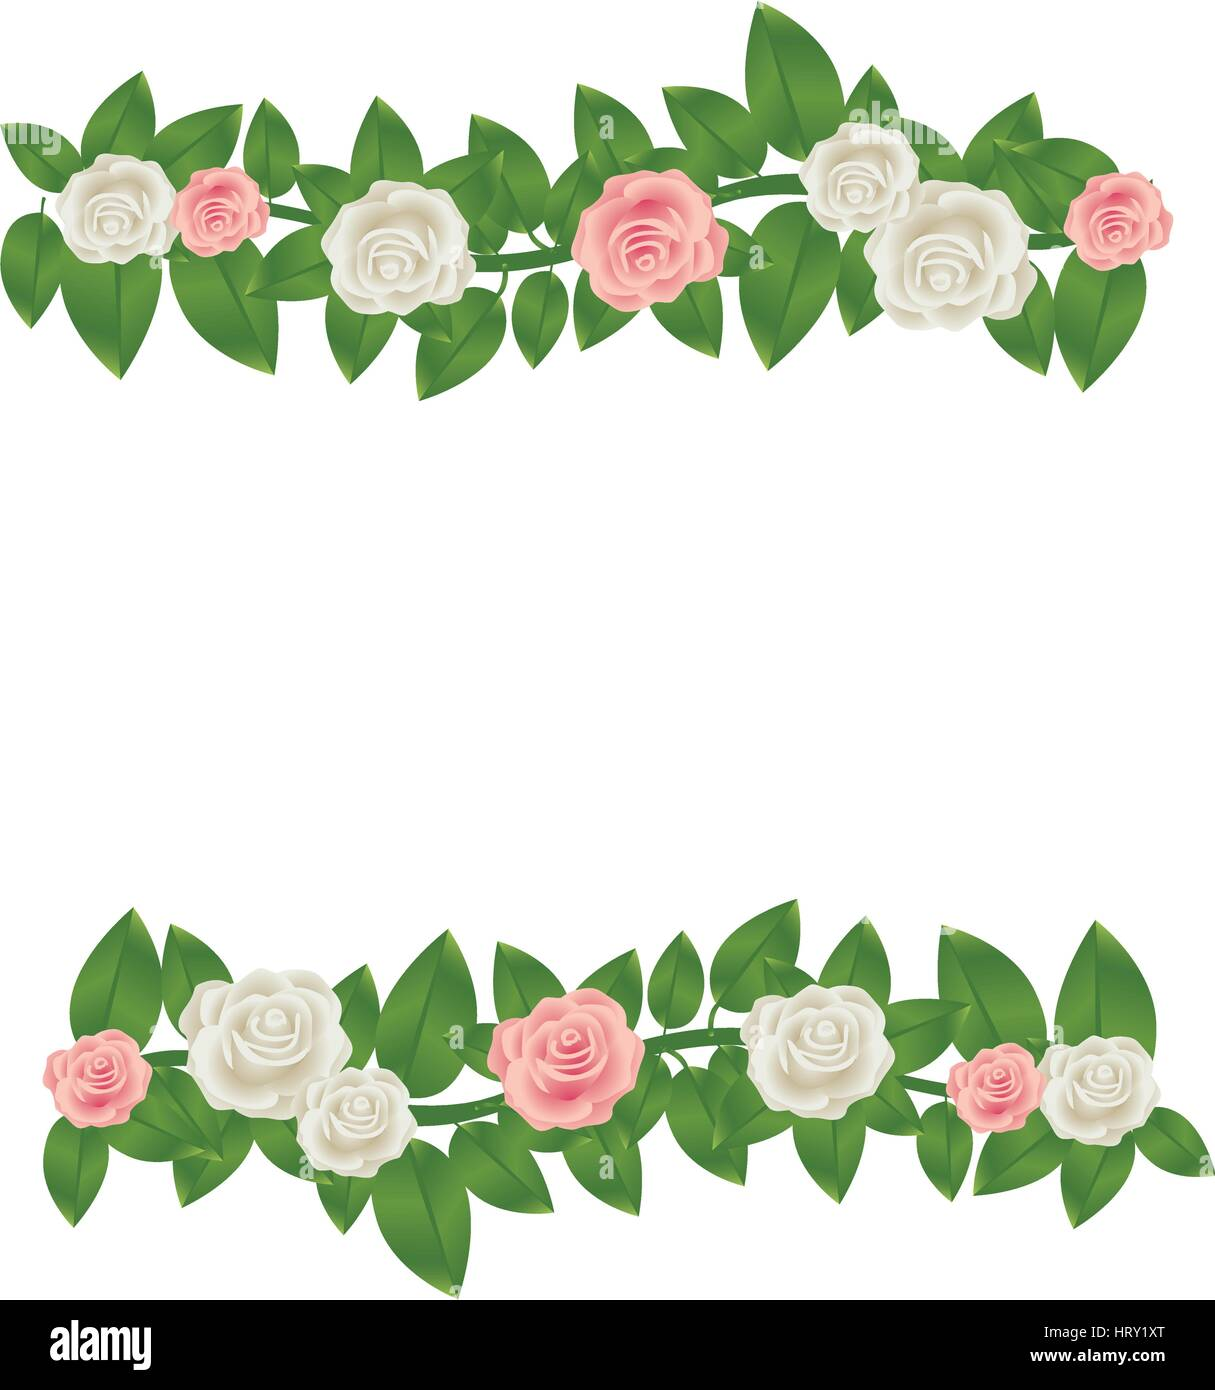 Colorful Border Crown Of Leaves With Roses Floral Design Stock Vector Image Art Alamy